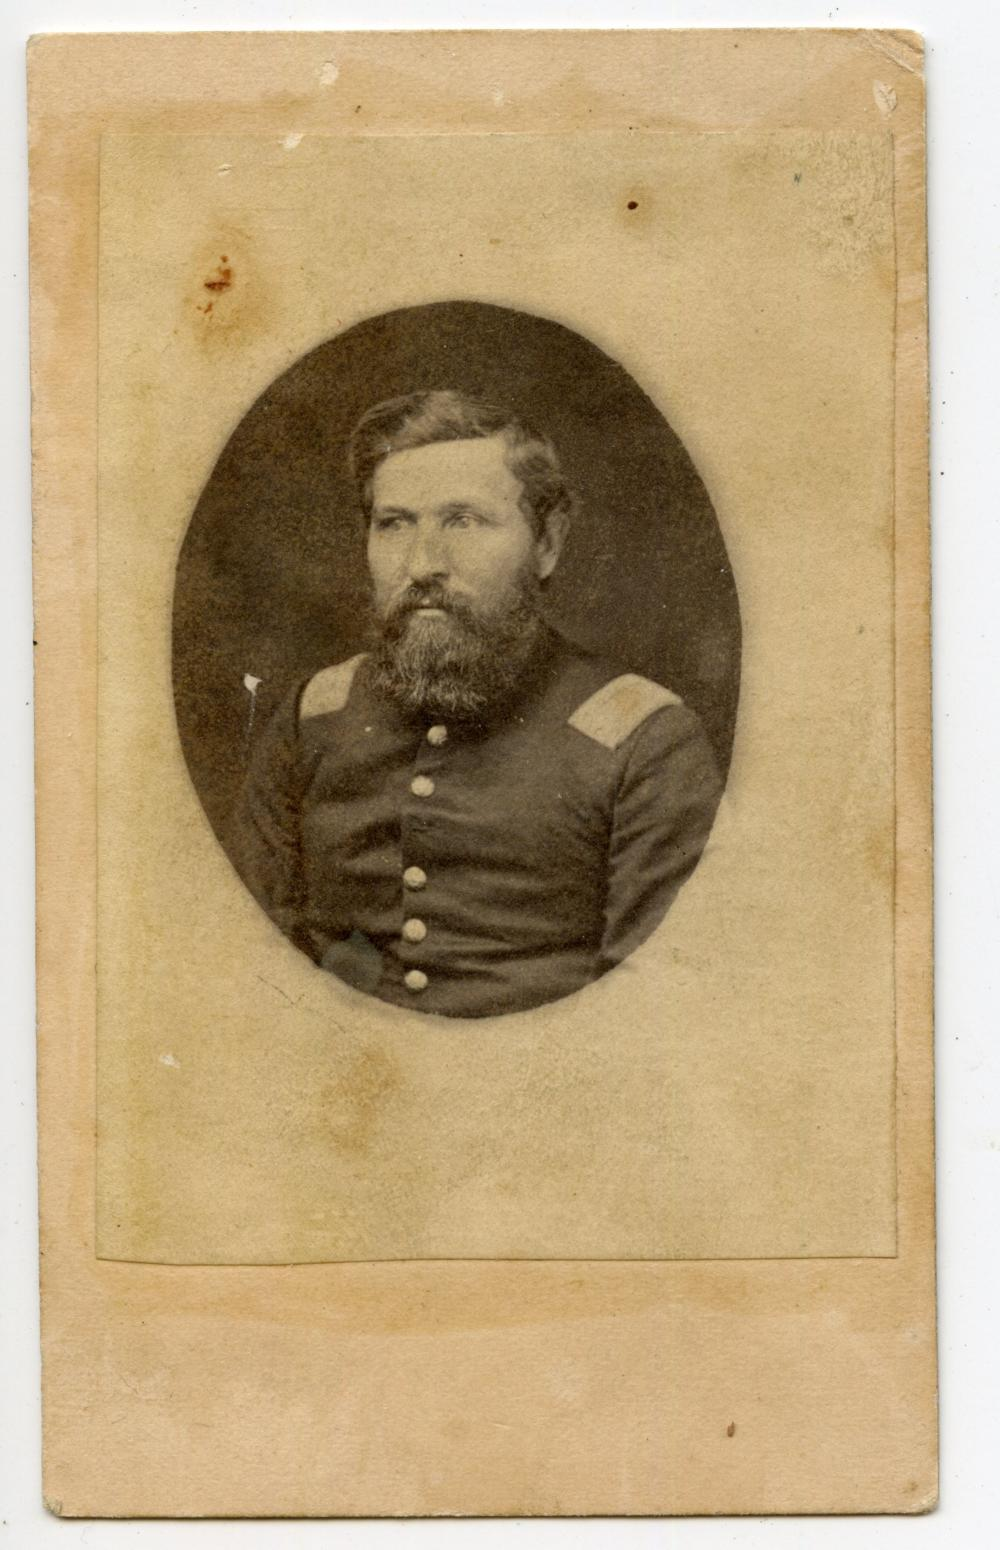 84th Illinois Civil War CDV, Wounded in TN